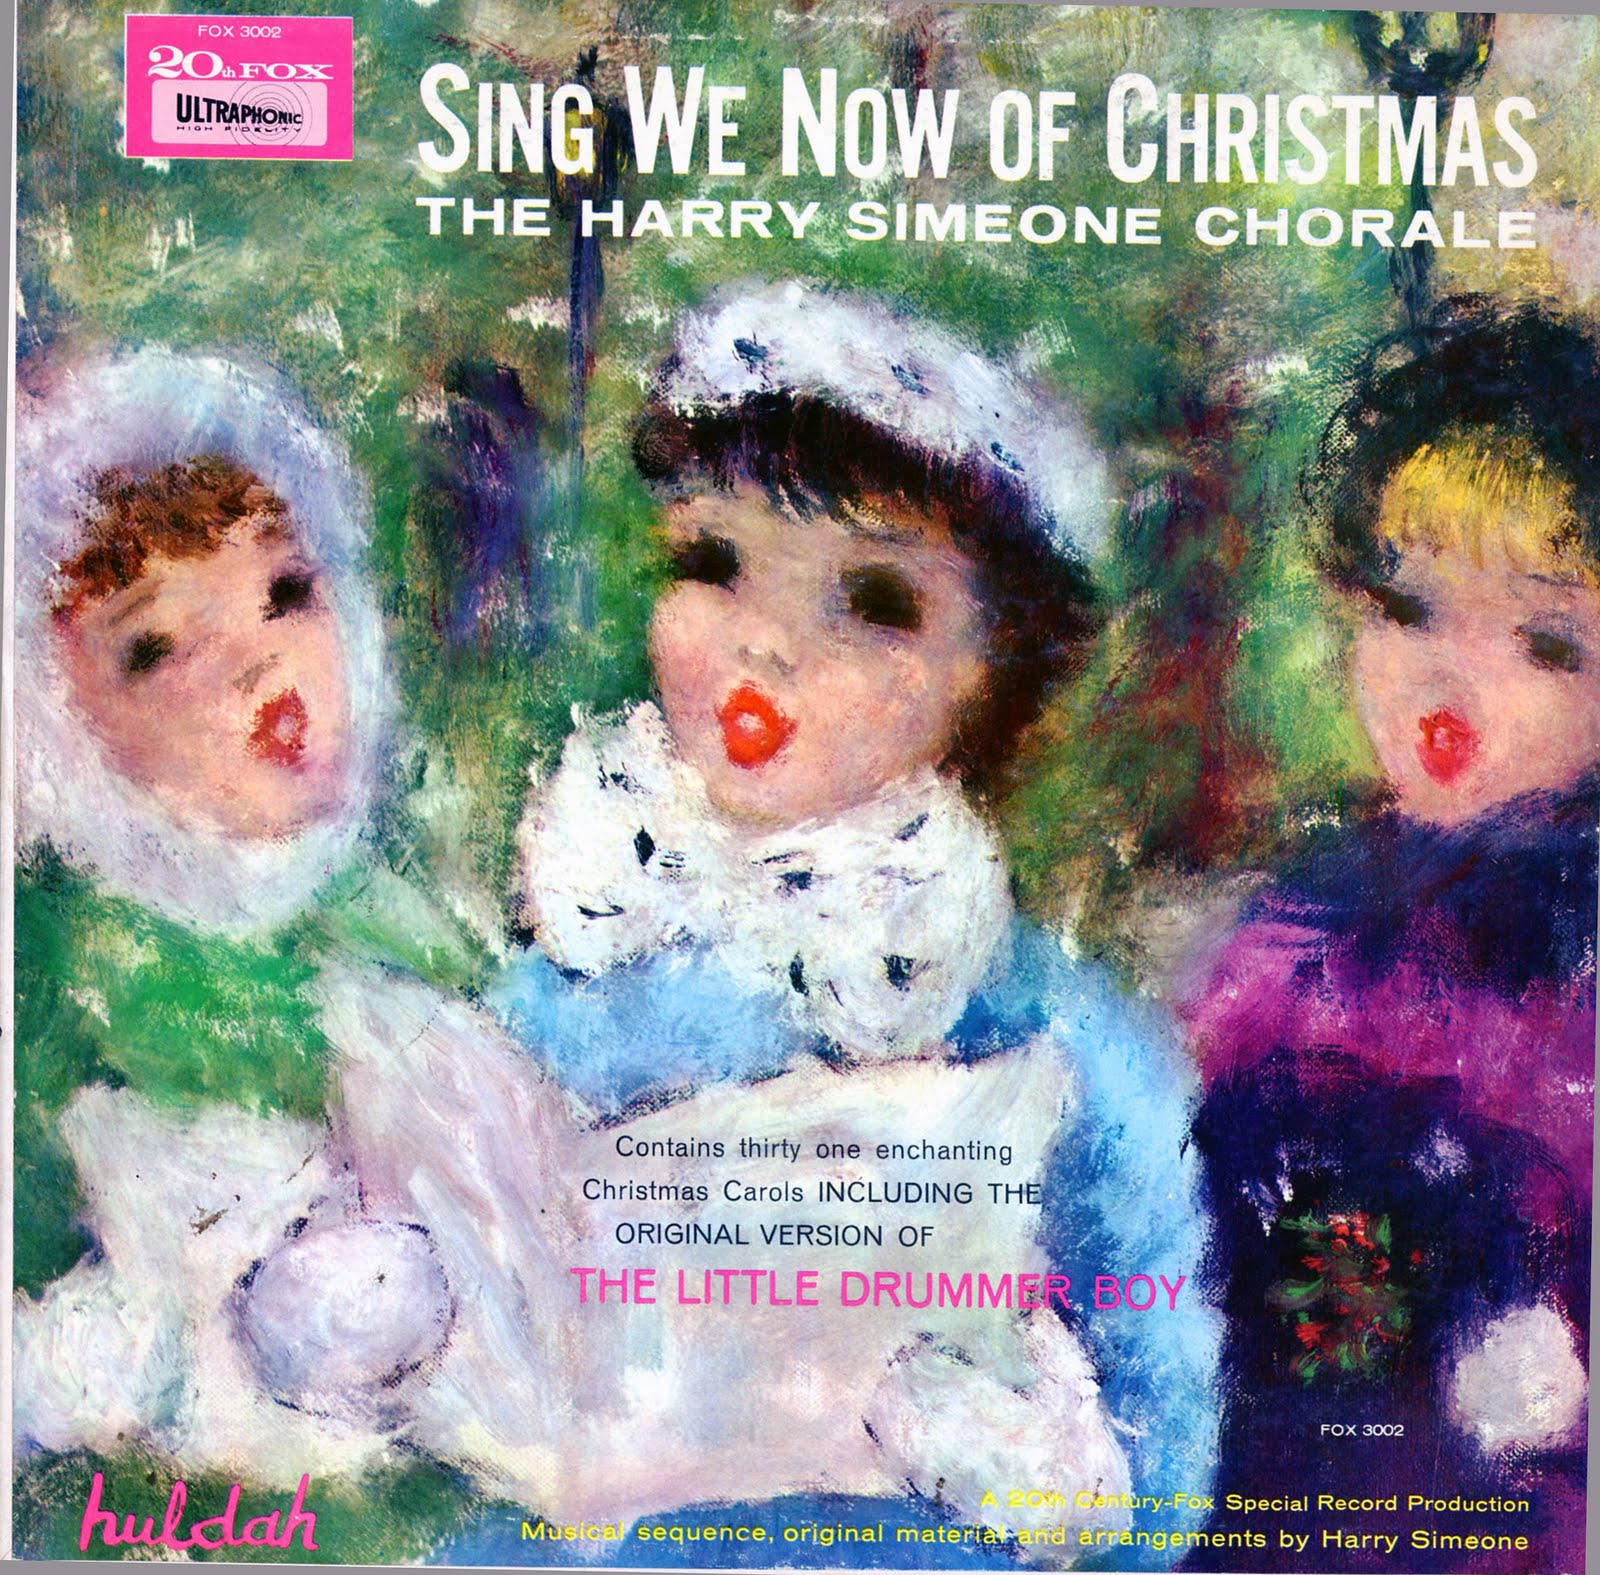 Harry Simeone Chorale | Unforgettable Christmas Music